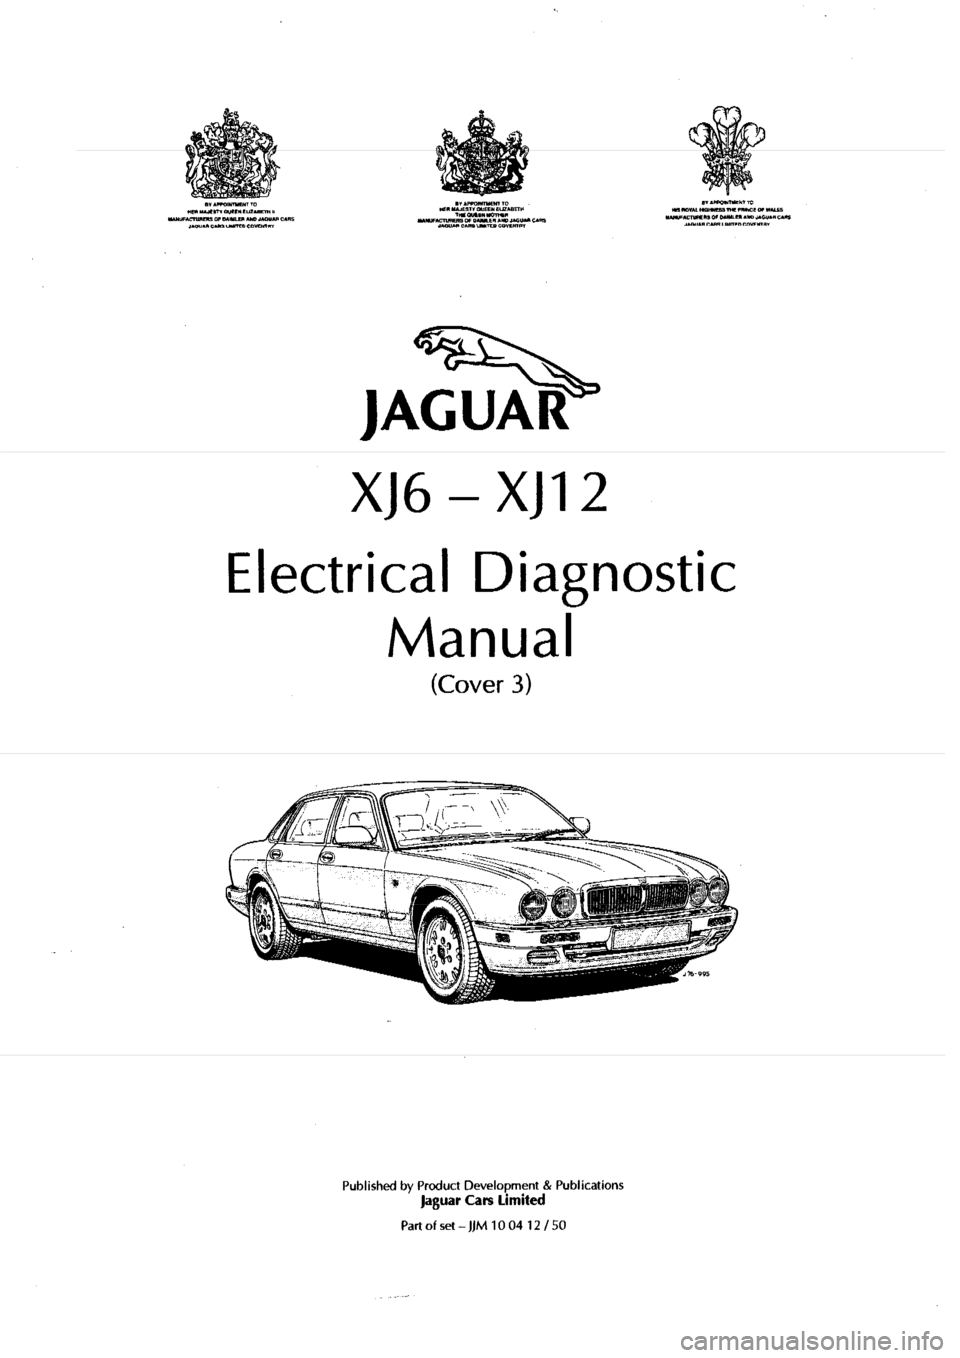 JAGUAR XJ6 1994 2.G Electrical Diagnostic Manual